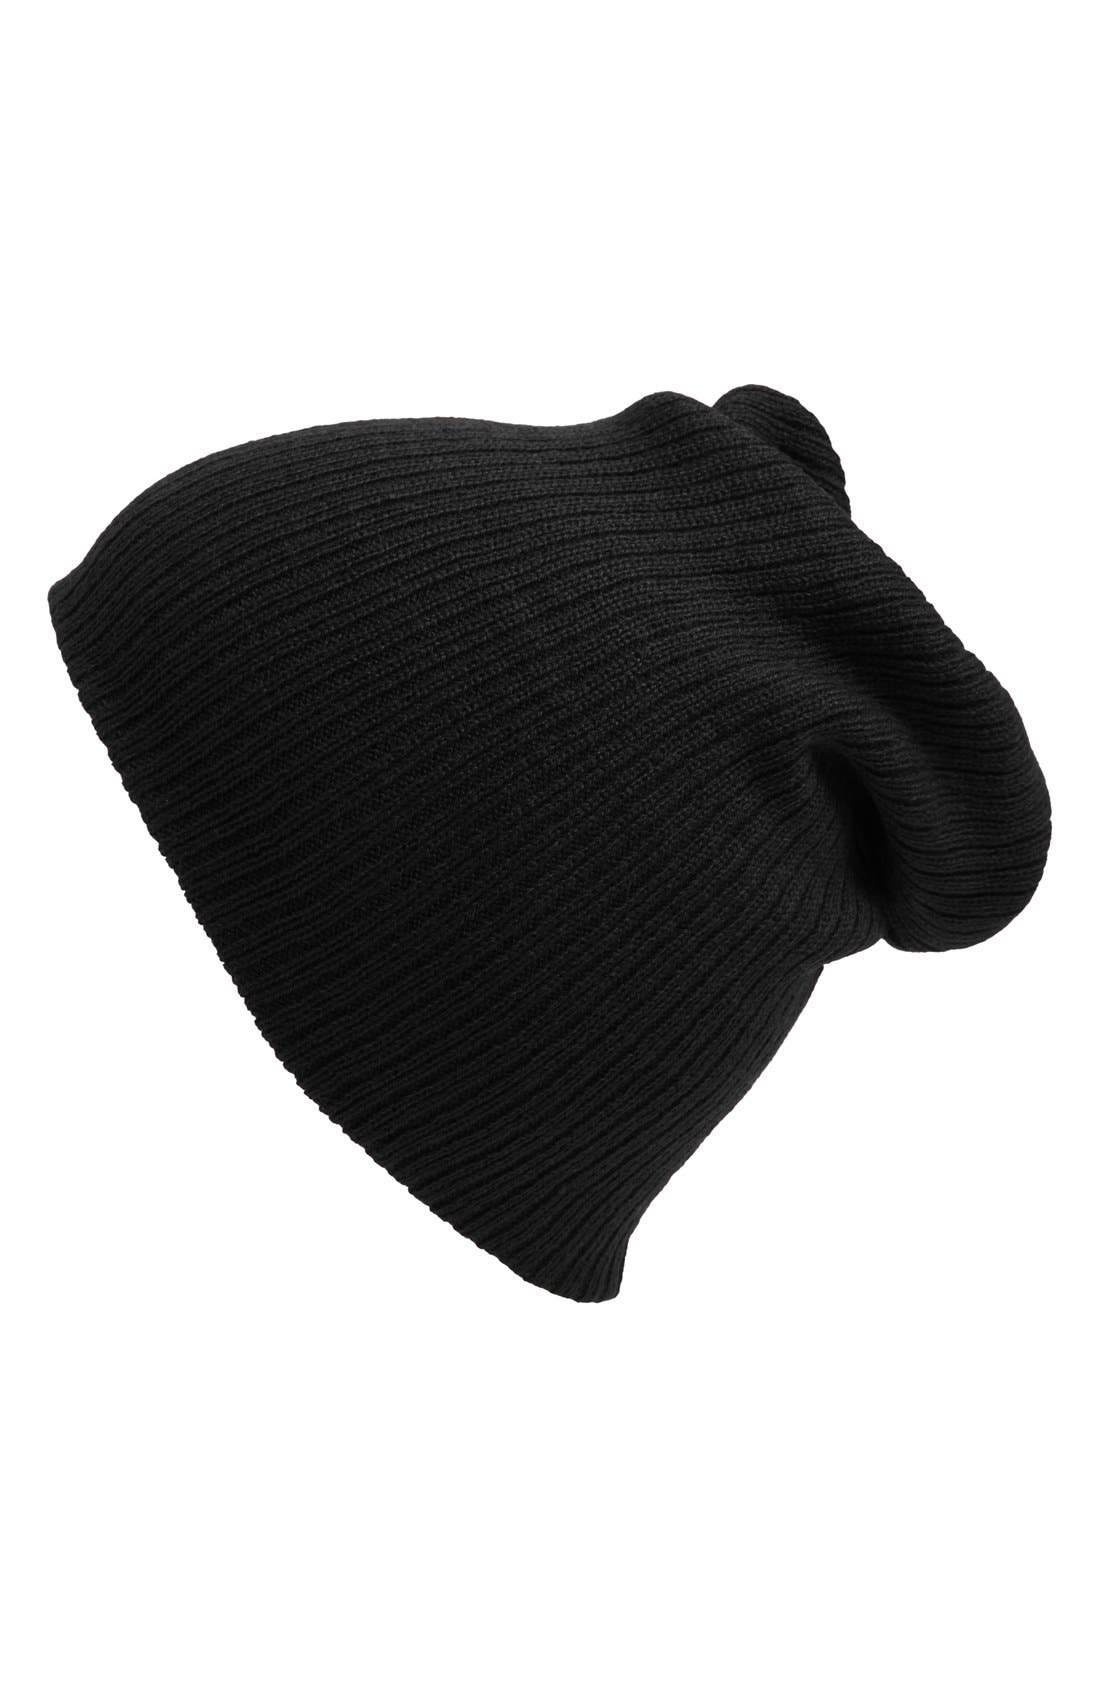 BP., Slouchy Ribbed Beanie, Alternate thumbnail 6, color, 001